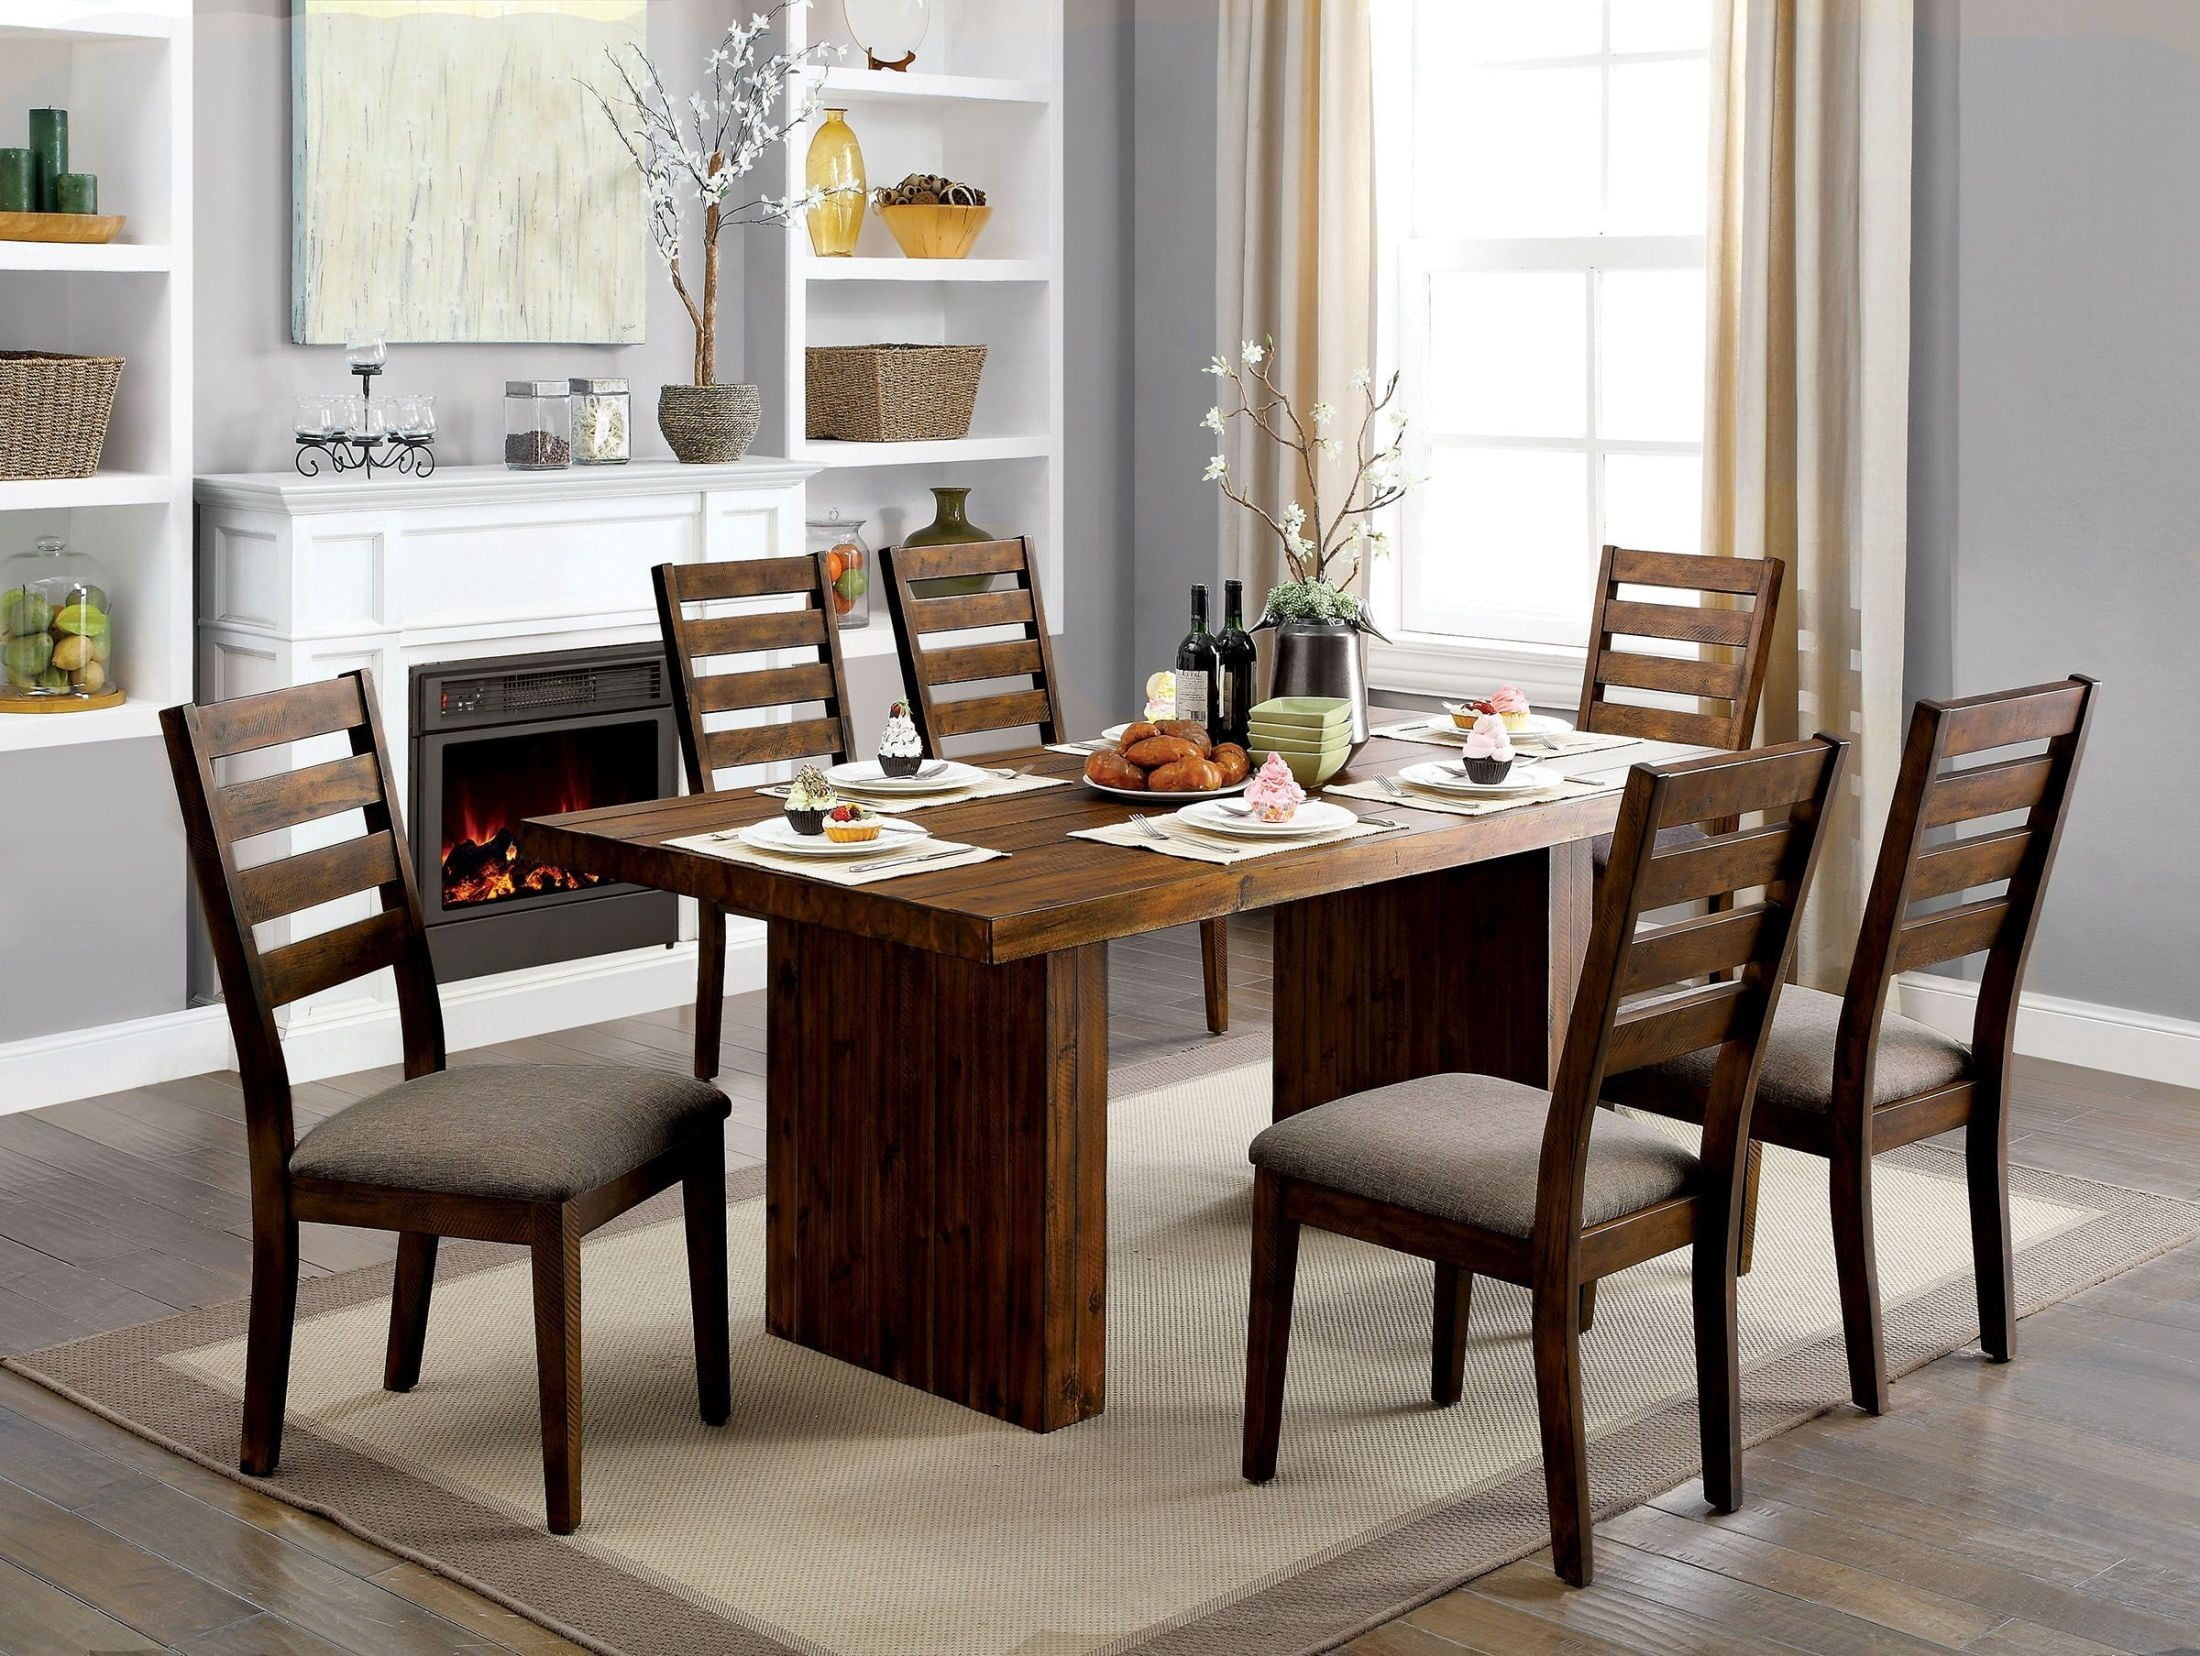 Dining Room Furniture Rustic Kirsty Rustic Walnut Dining Room Set From Furniture Of